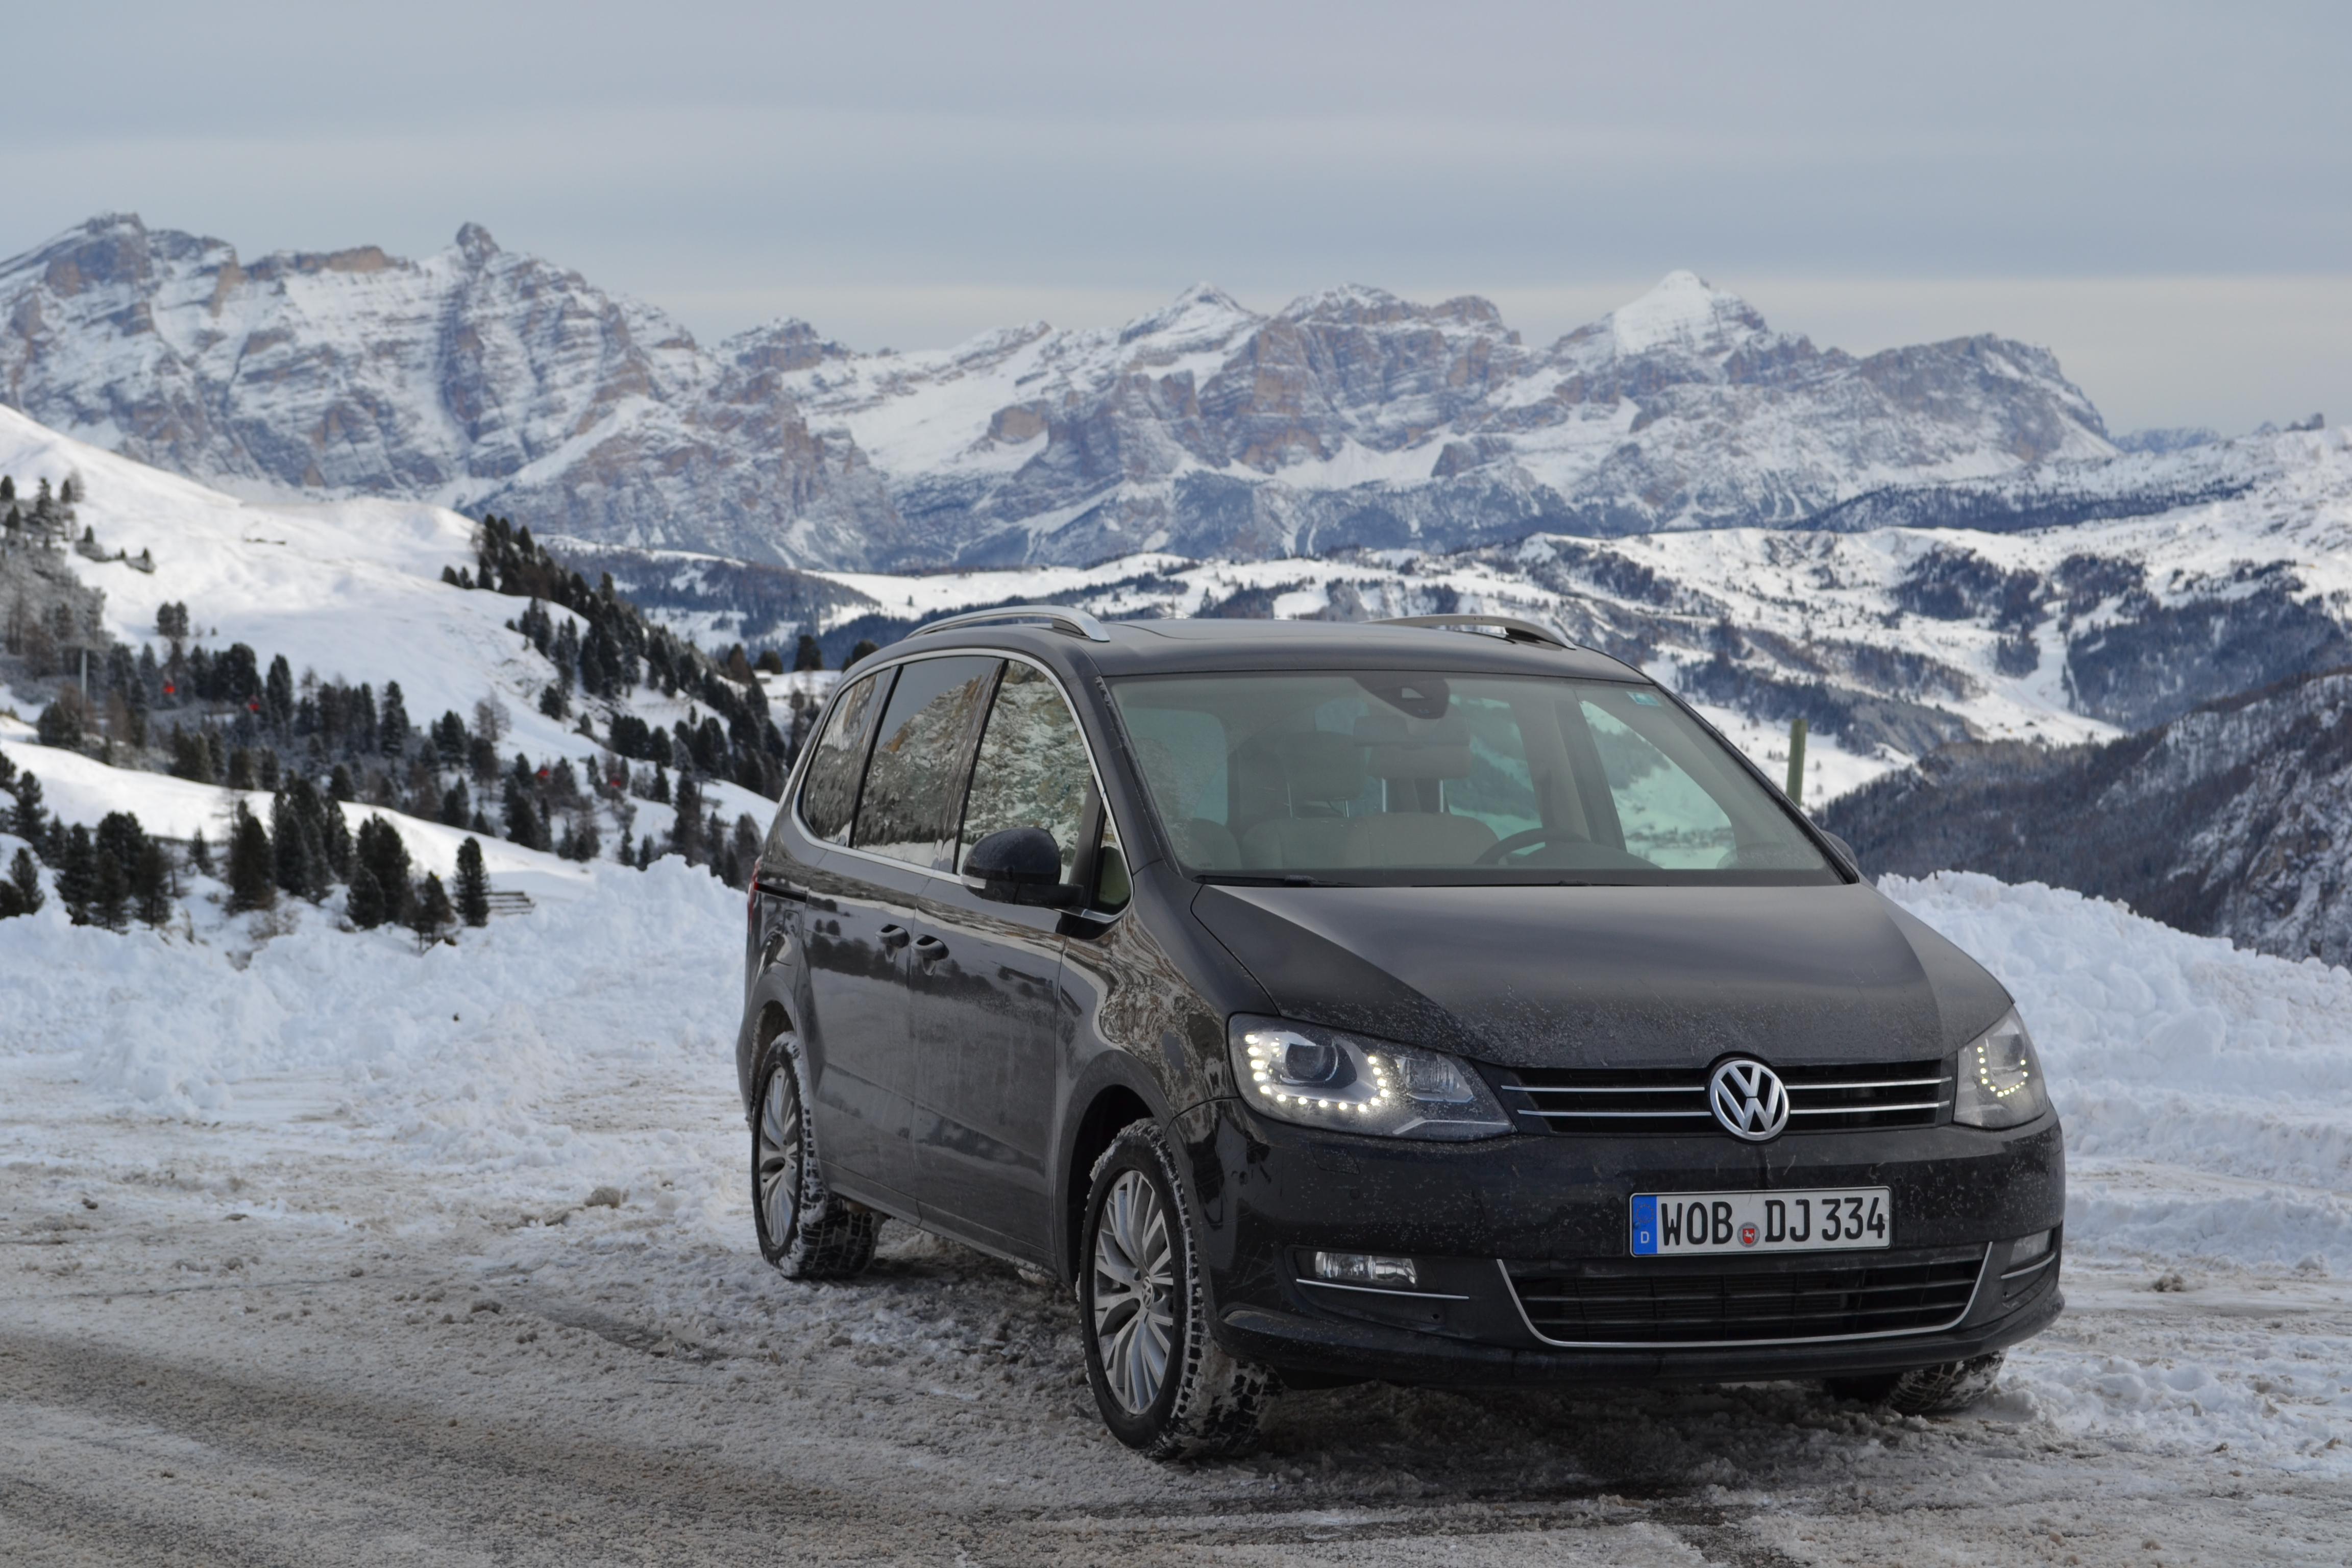 VOLKSWAGEN SHARAN brown